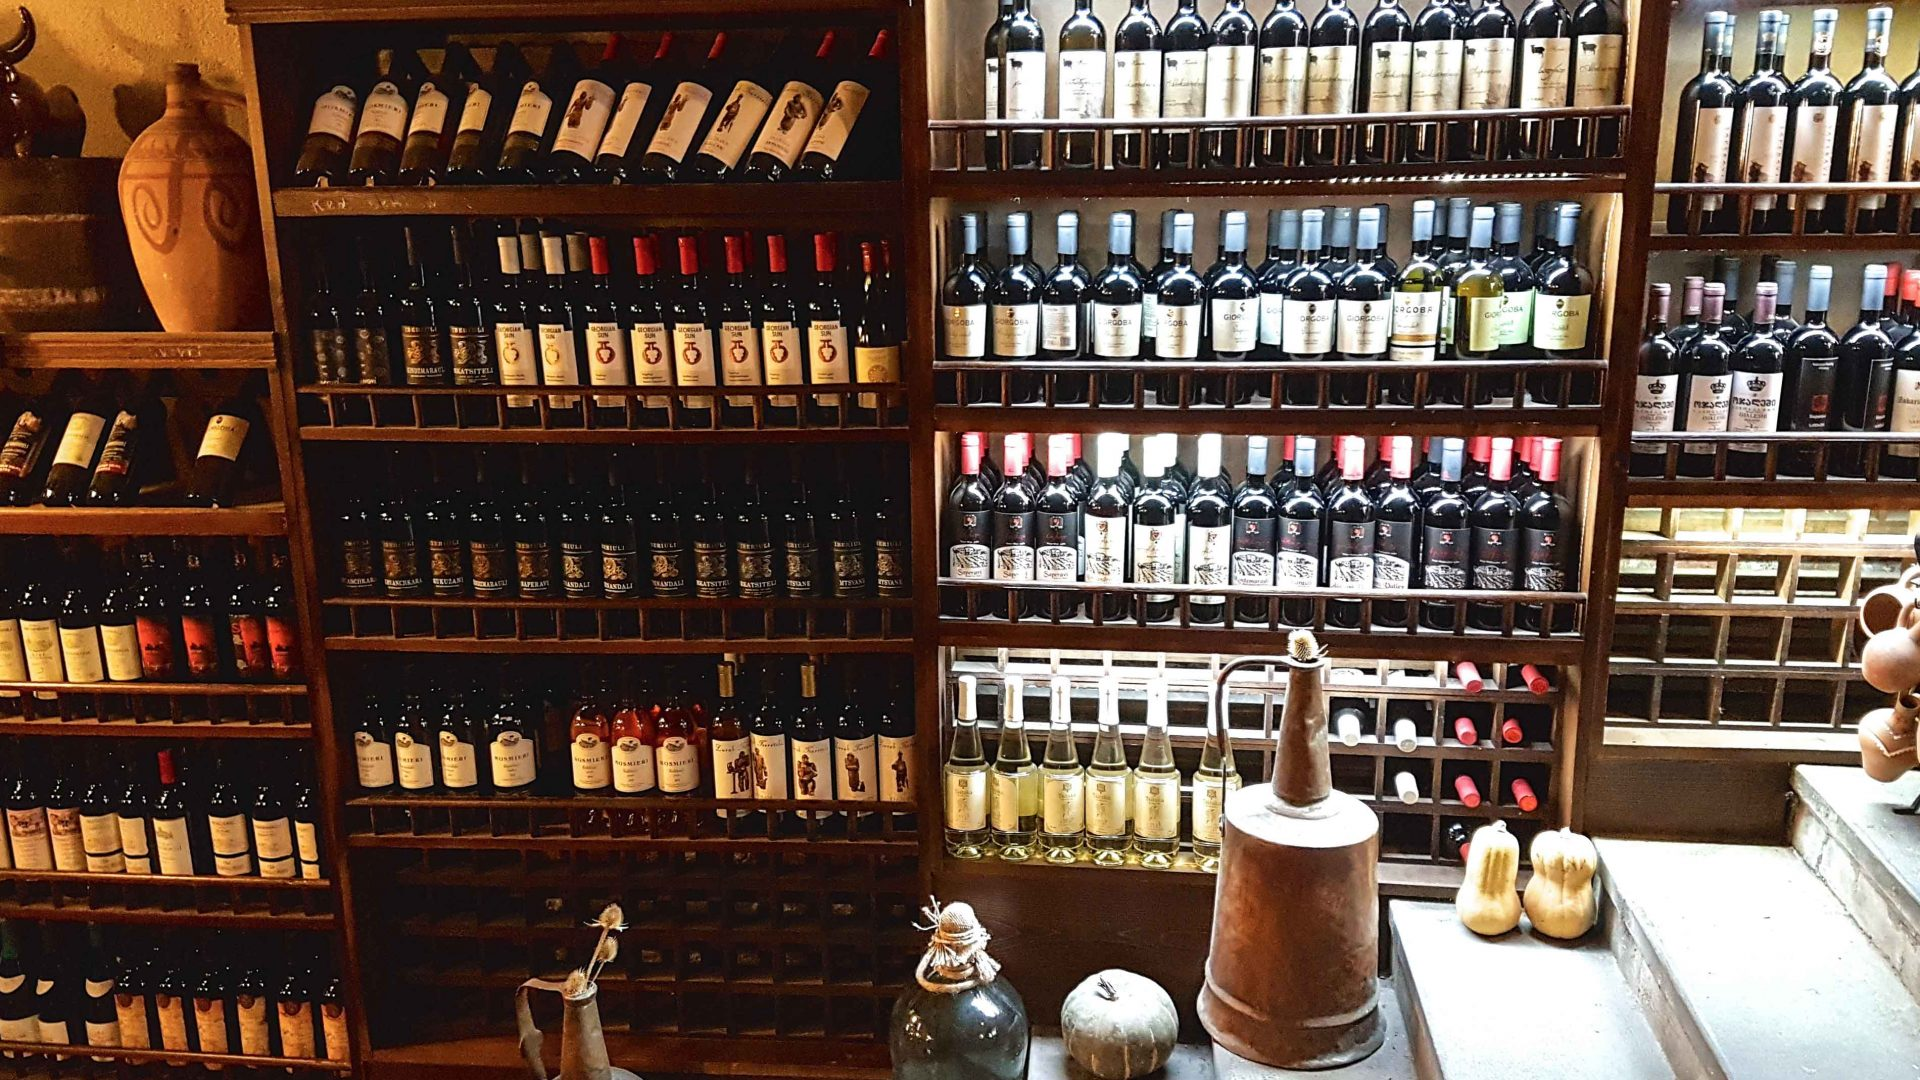 Famous Georgian natural wines displayed on a shelf.